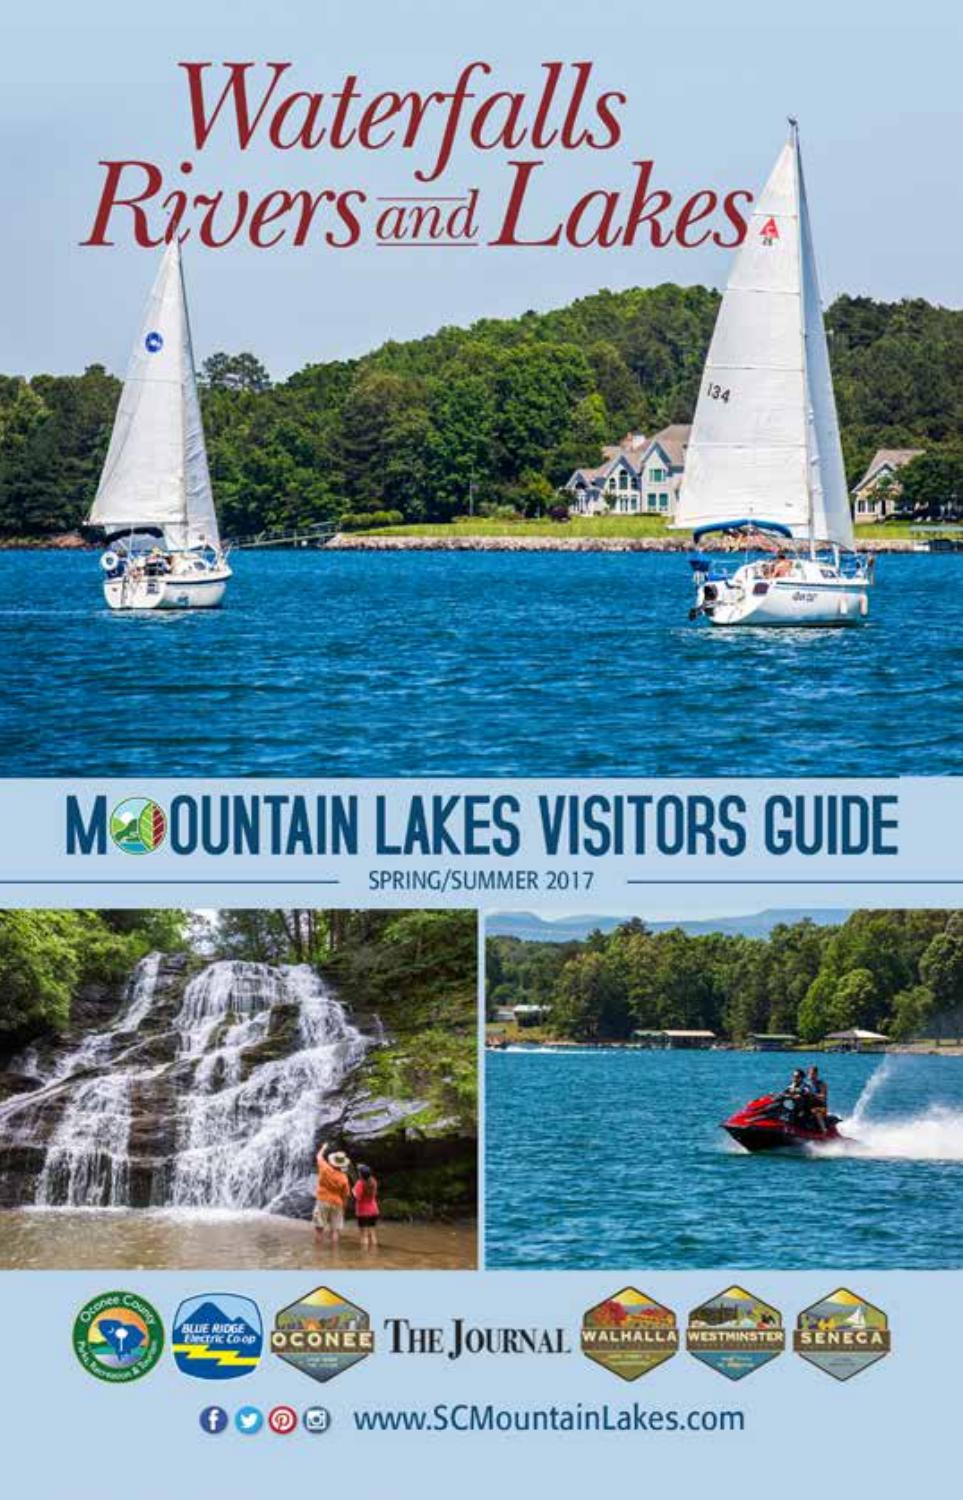 Mountain Lakes Visitors Guide Spring 2017 By Edwards